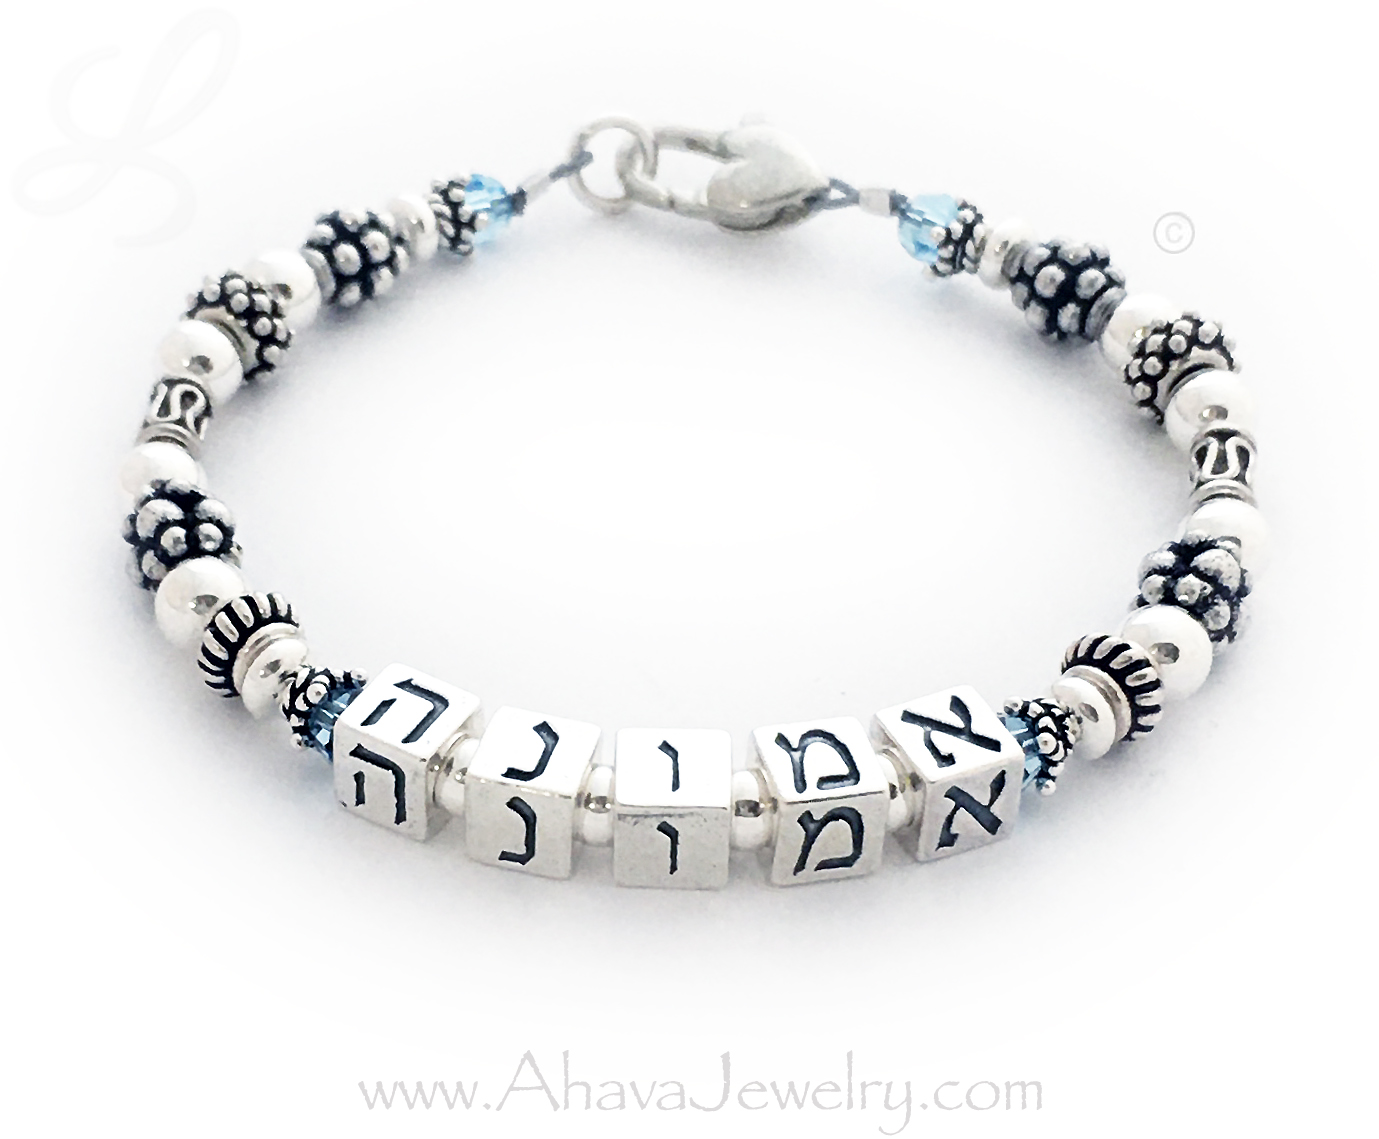 This bracelet says Emunah in Hebrew which means Trust in Hebrew. They added March Birthstone Crystals before and afteer Emunah and next to the clasp. They upgraded from the free lobster claw clasp to a Heart Lobster Claw Clasp.